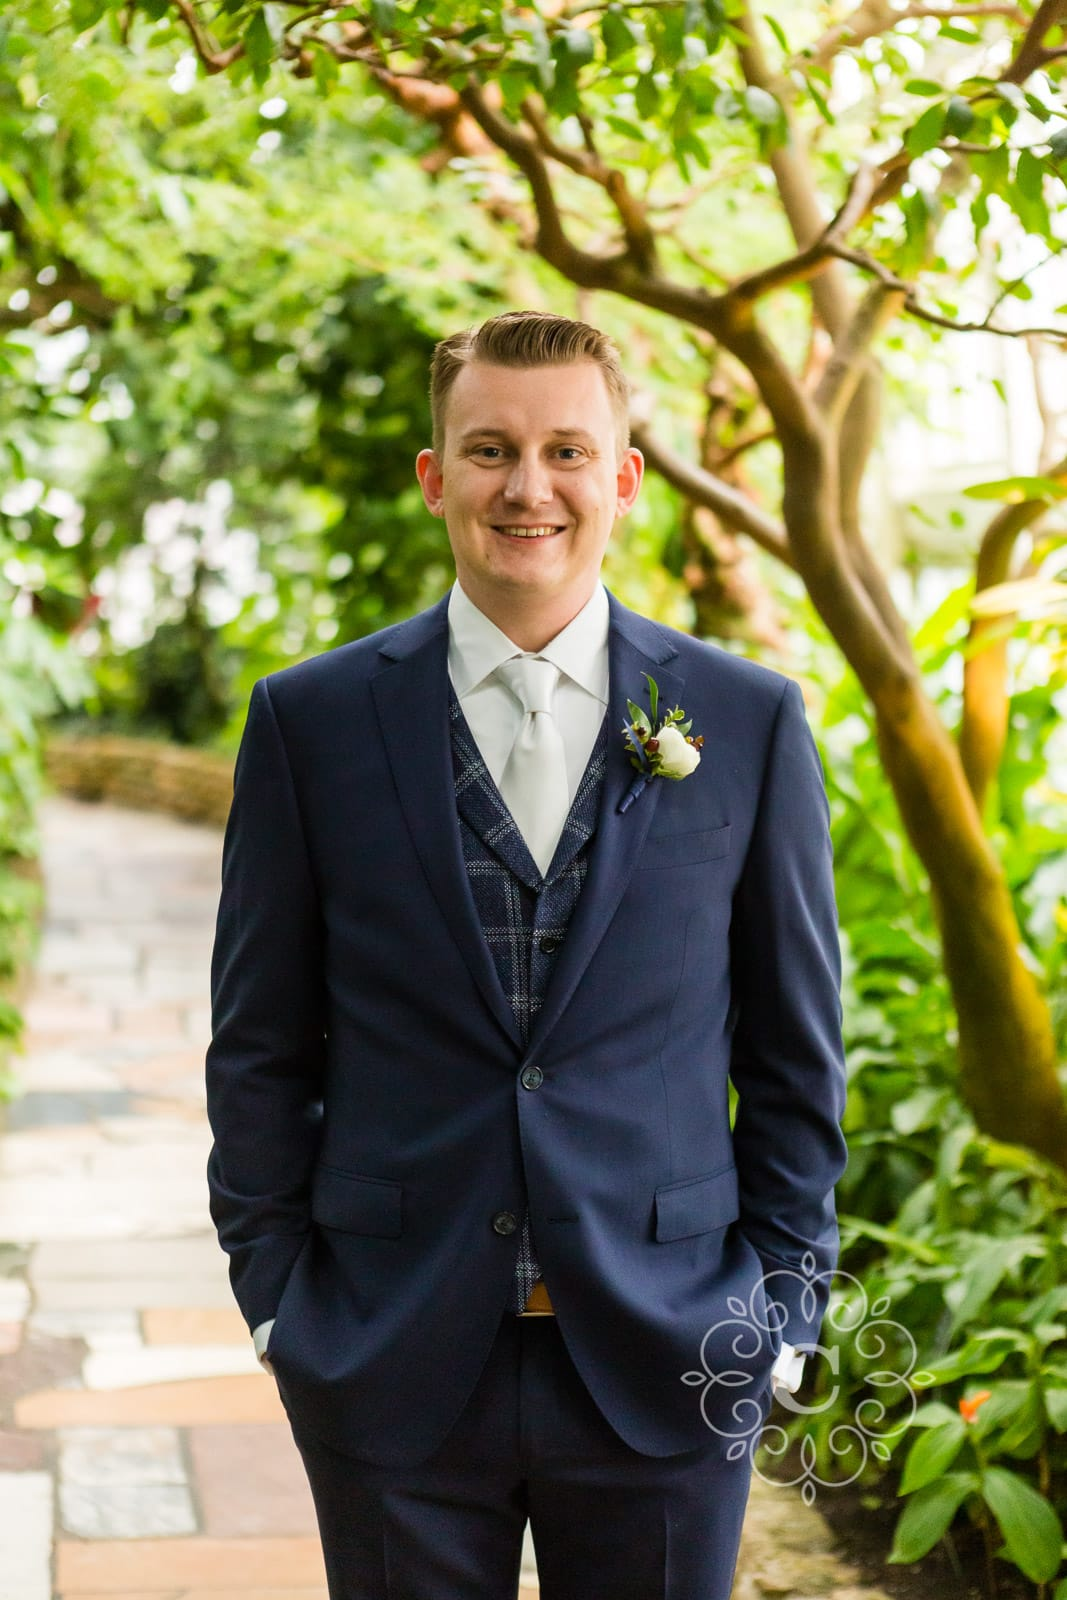 Marjorie McNeely Como Park Conservatory Wedding Photo